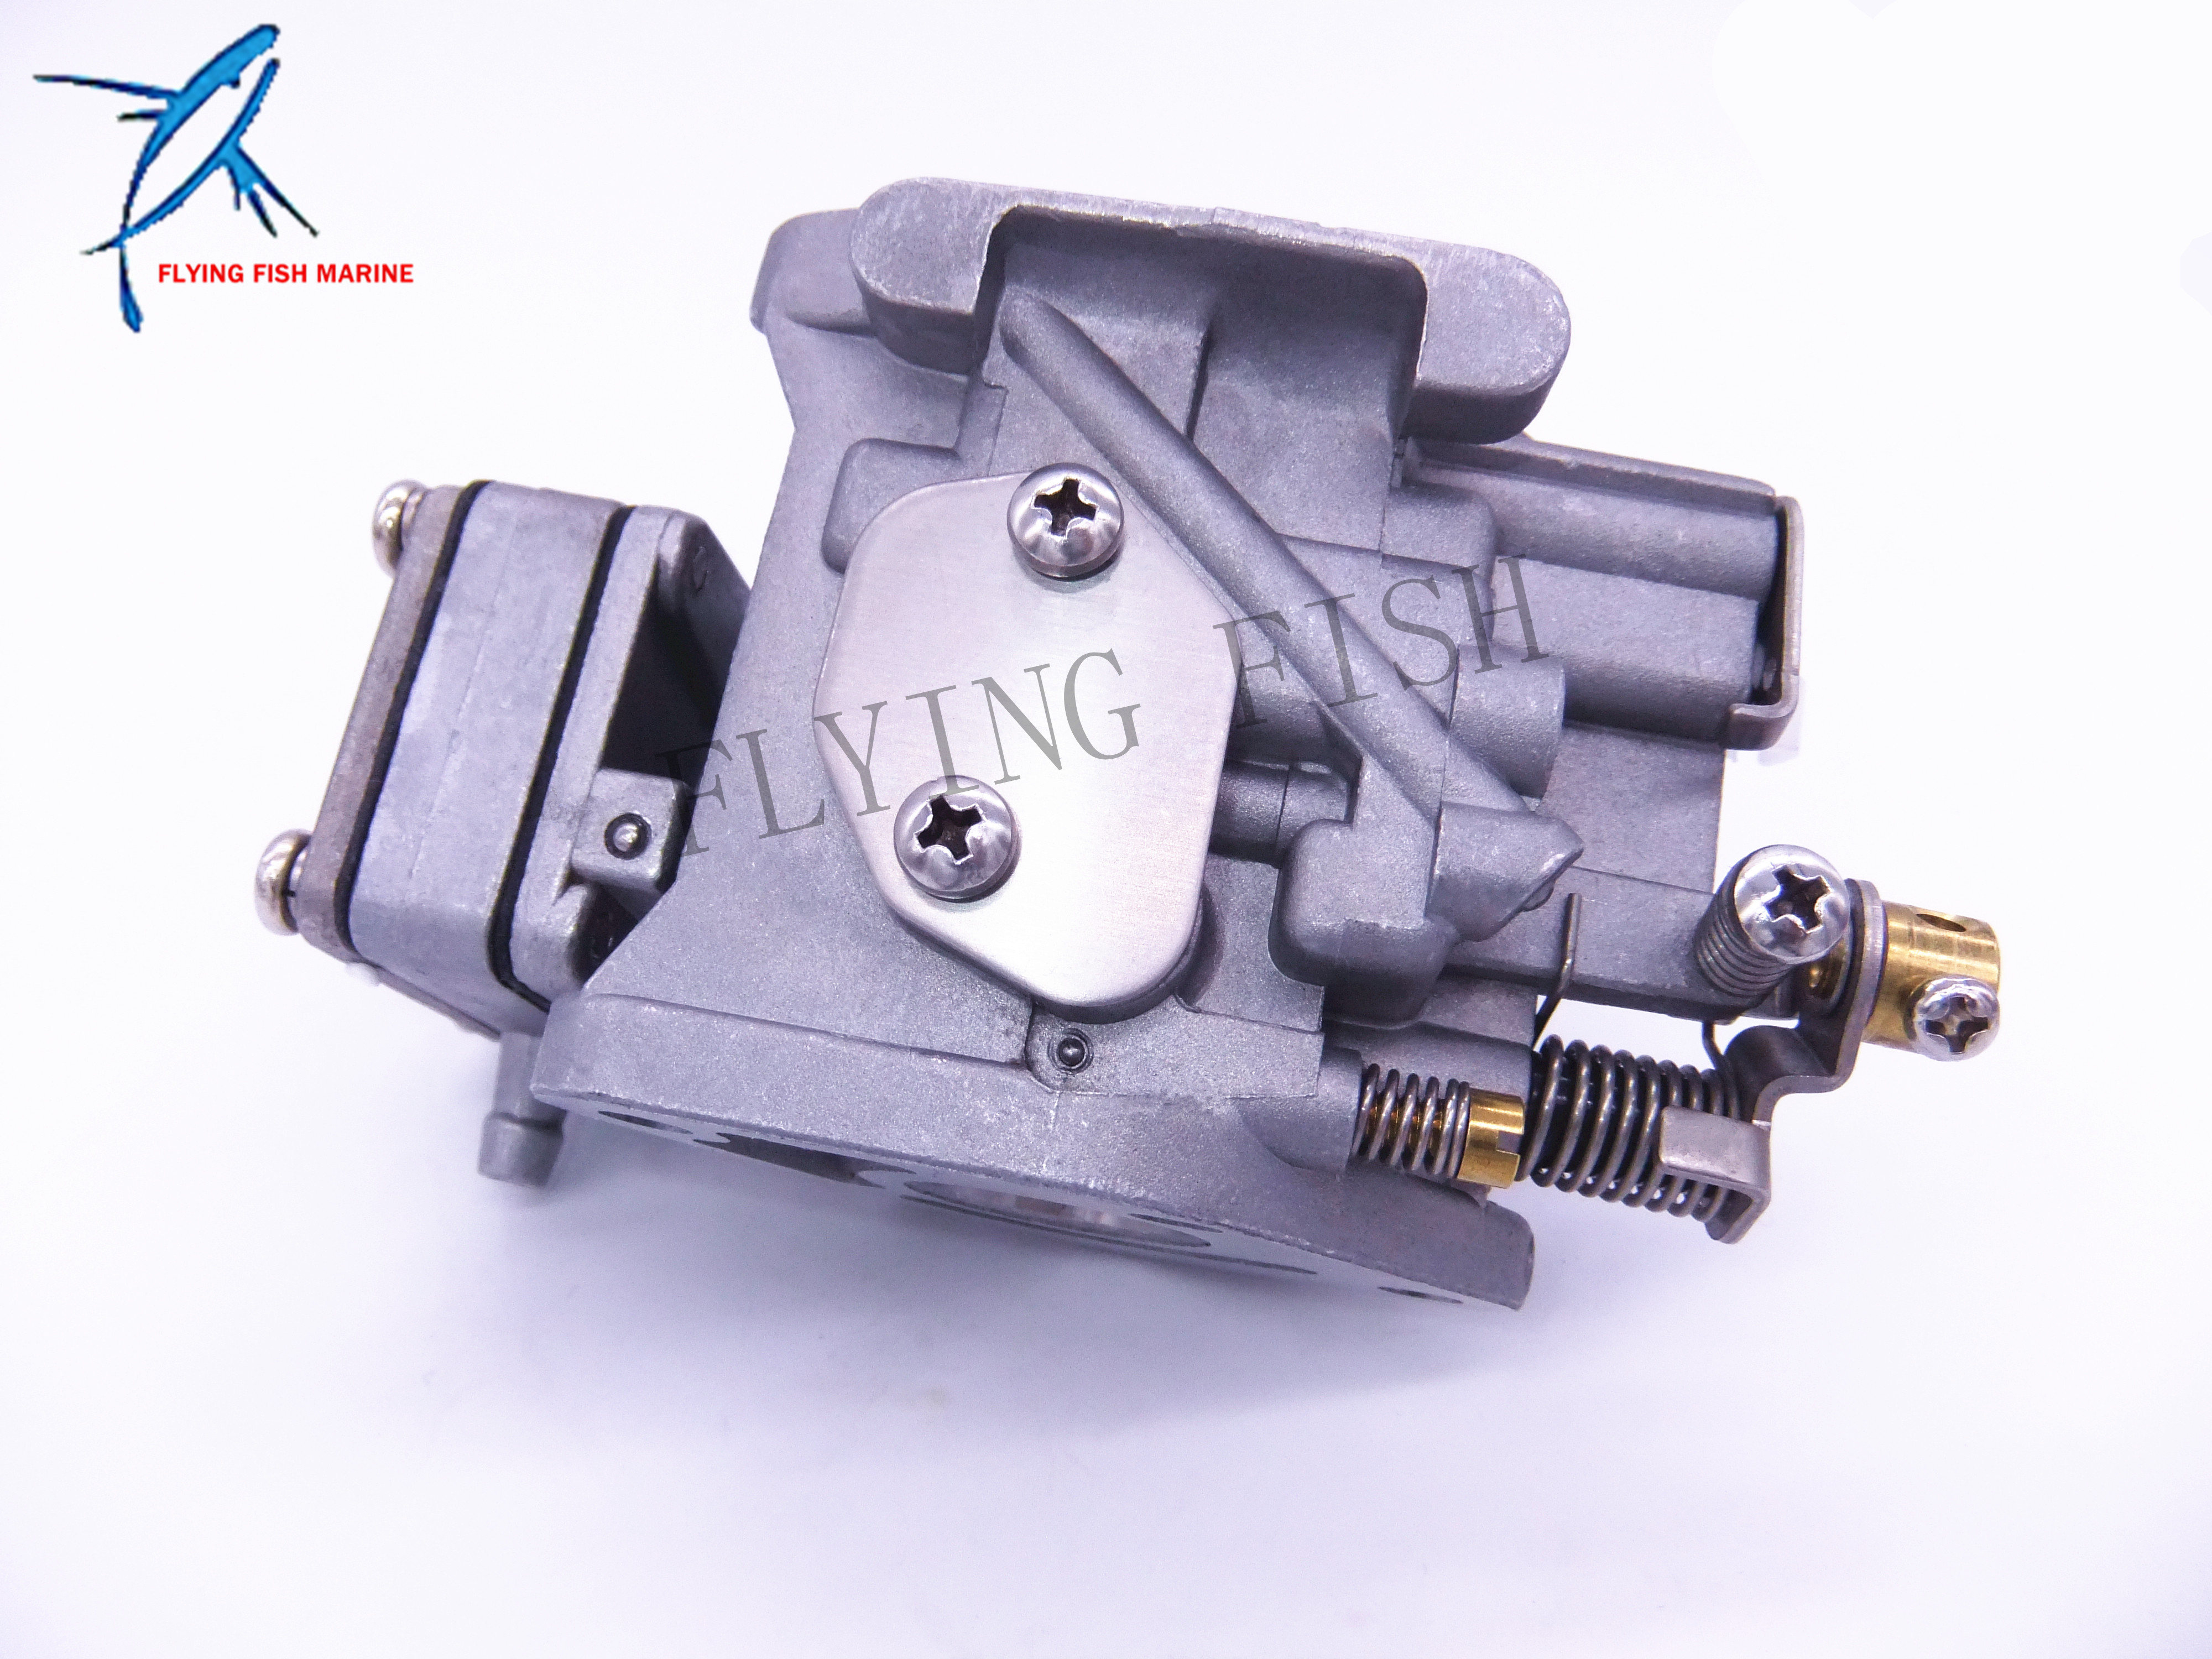 2-stroke Boat Motor Carburetor Assy for Hangkai 5hp 6hp outboard motors Free Shipping f063000 fit for eps fx880 fx1180 printhead assy 9pin 90day refurbish waty free shipping